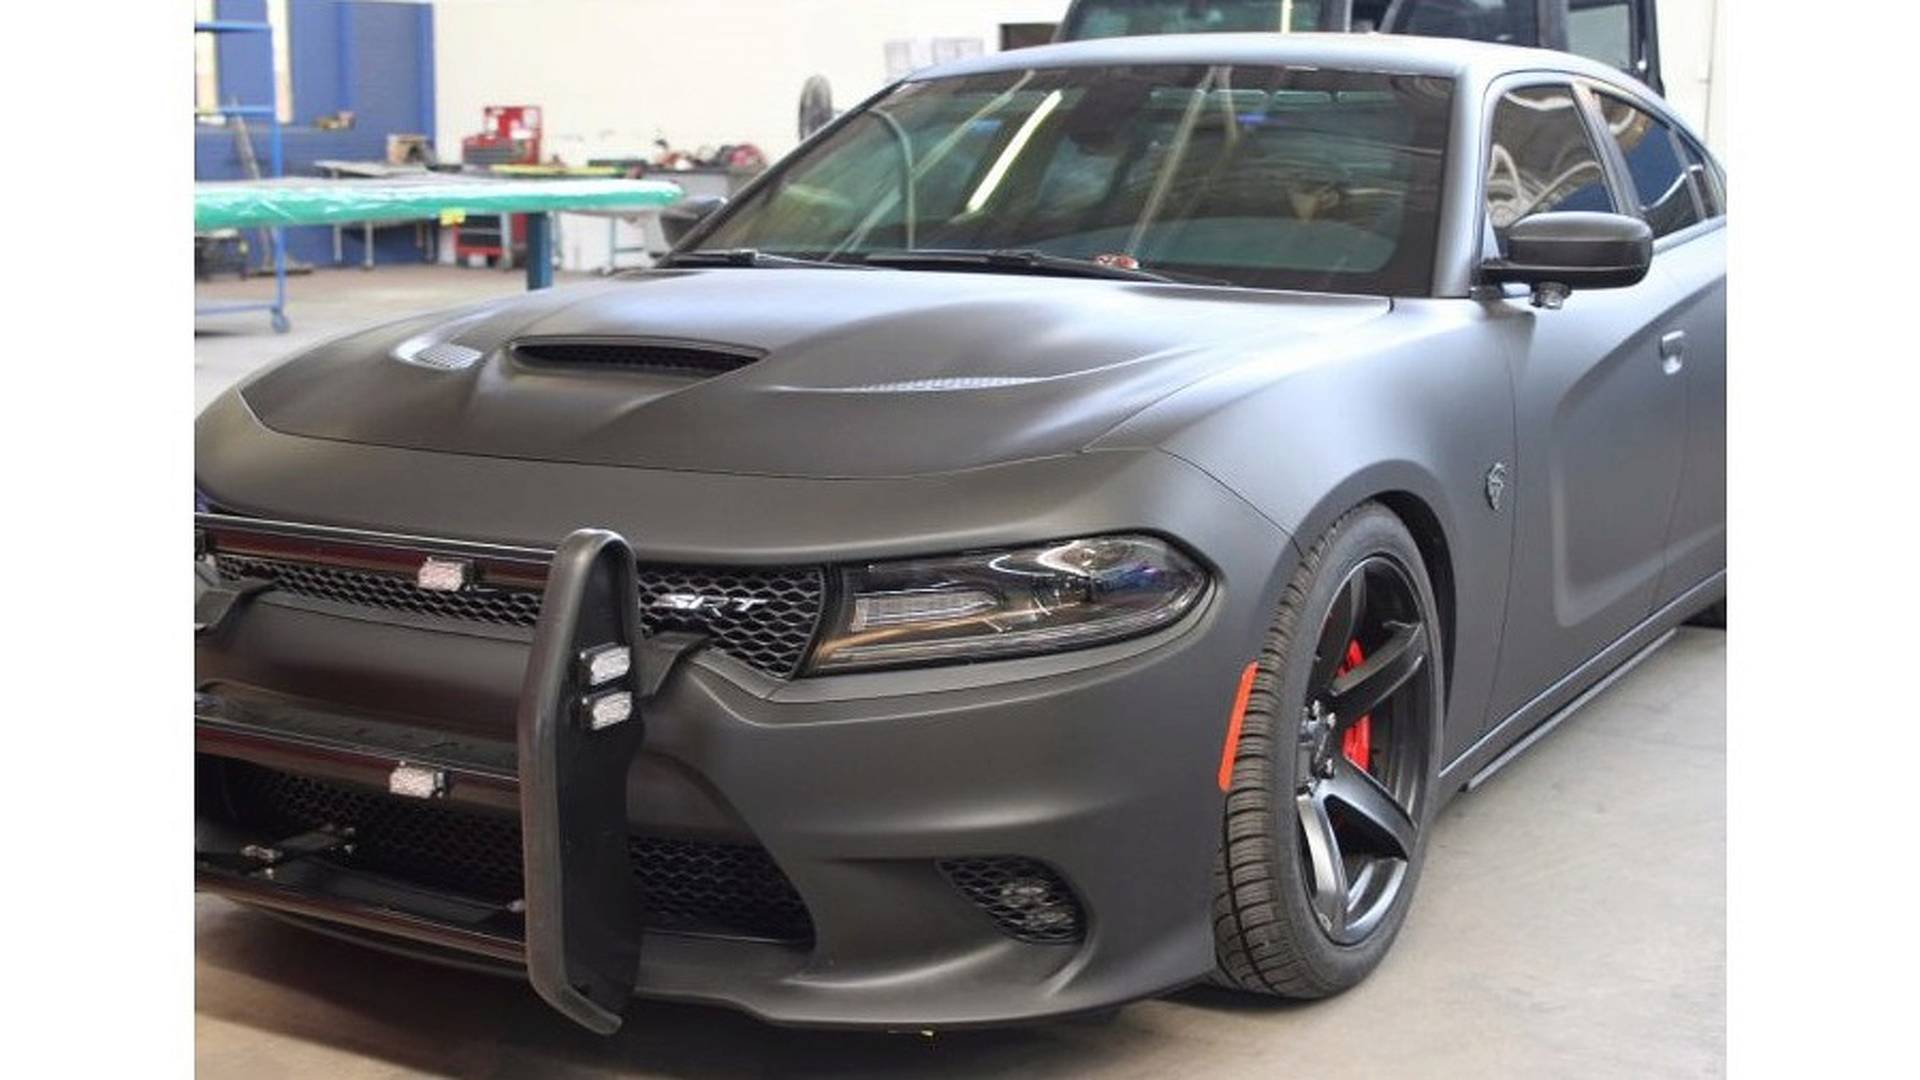 Awd Dodge Charger Srt Hellcat Reporting For Police Duty